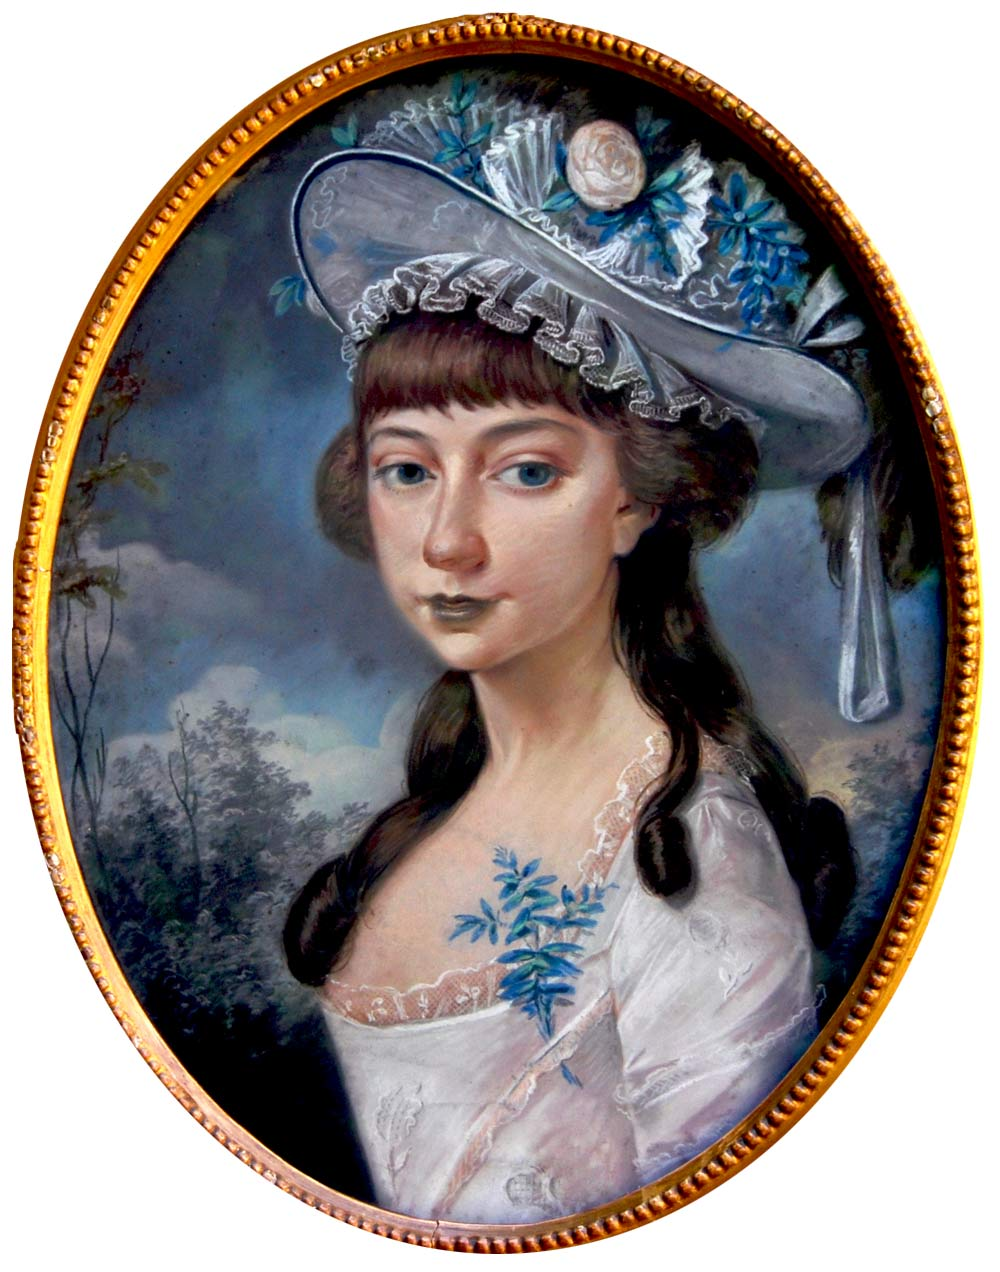 Mary-Ann-Hardy-in-1785-by-Huquier